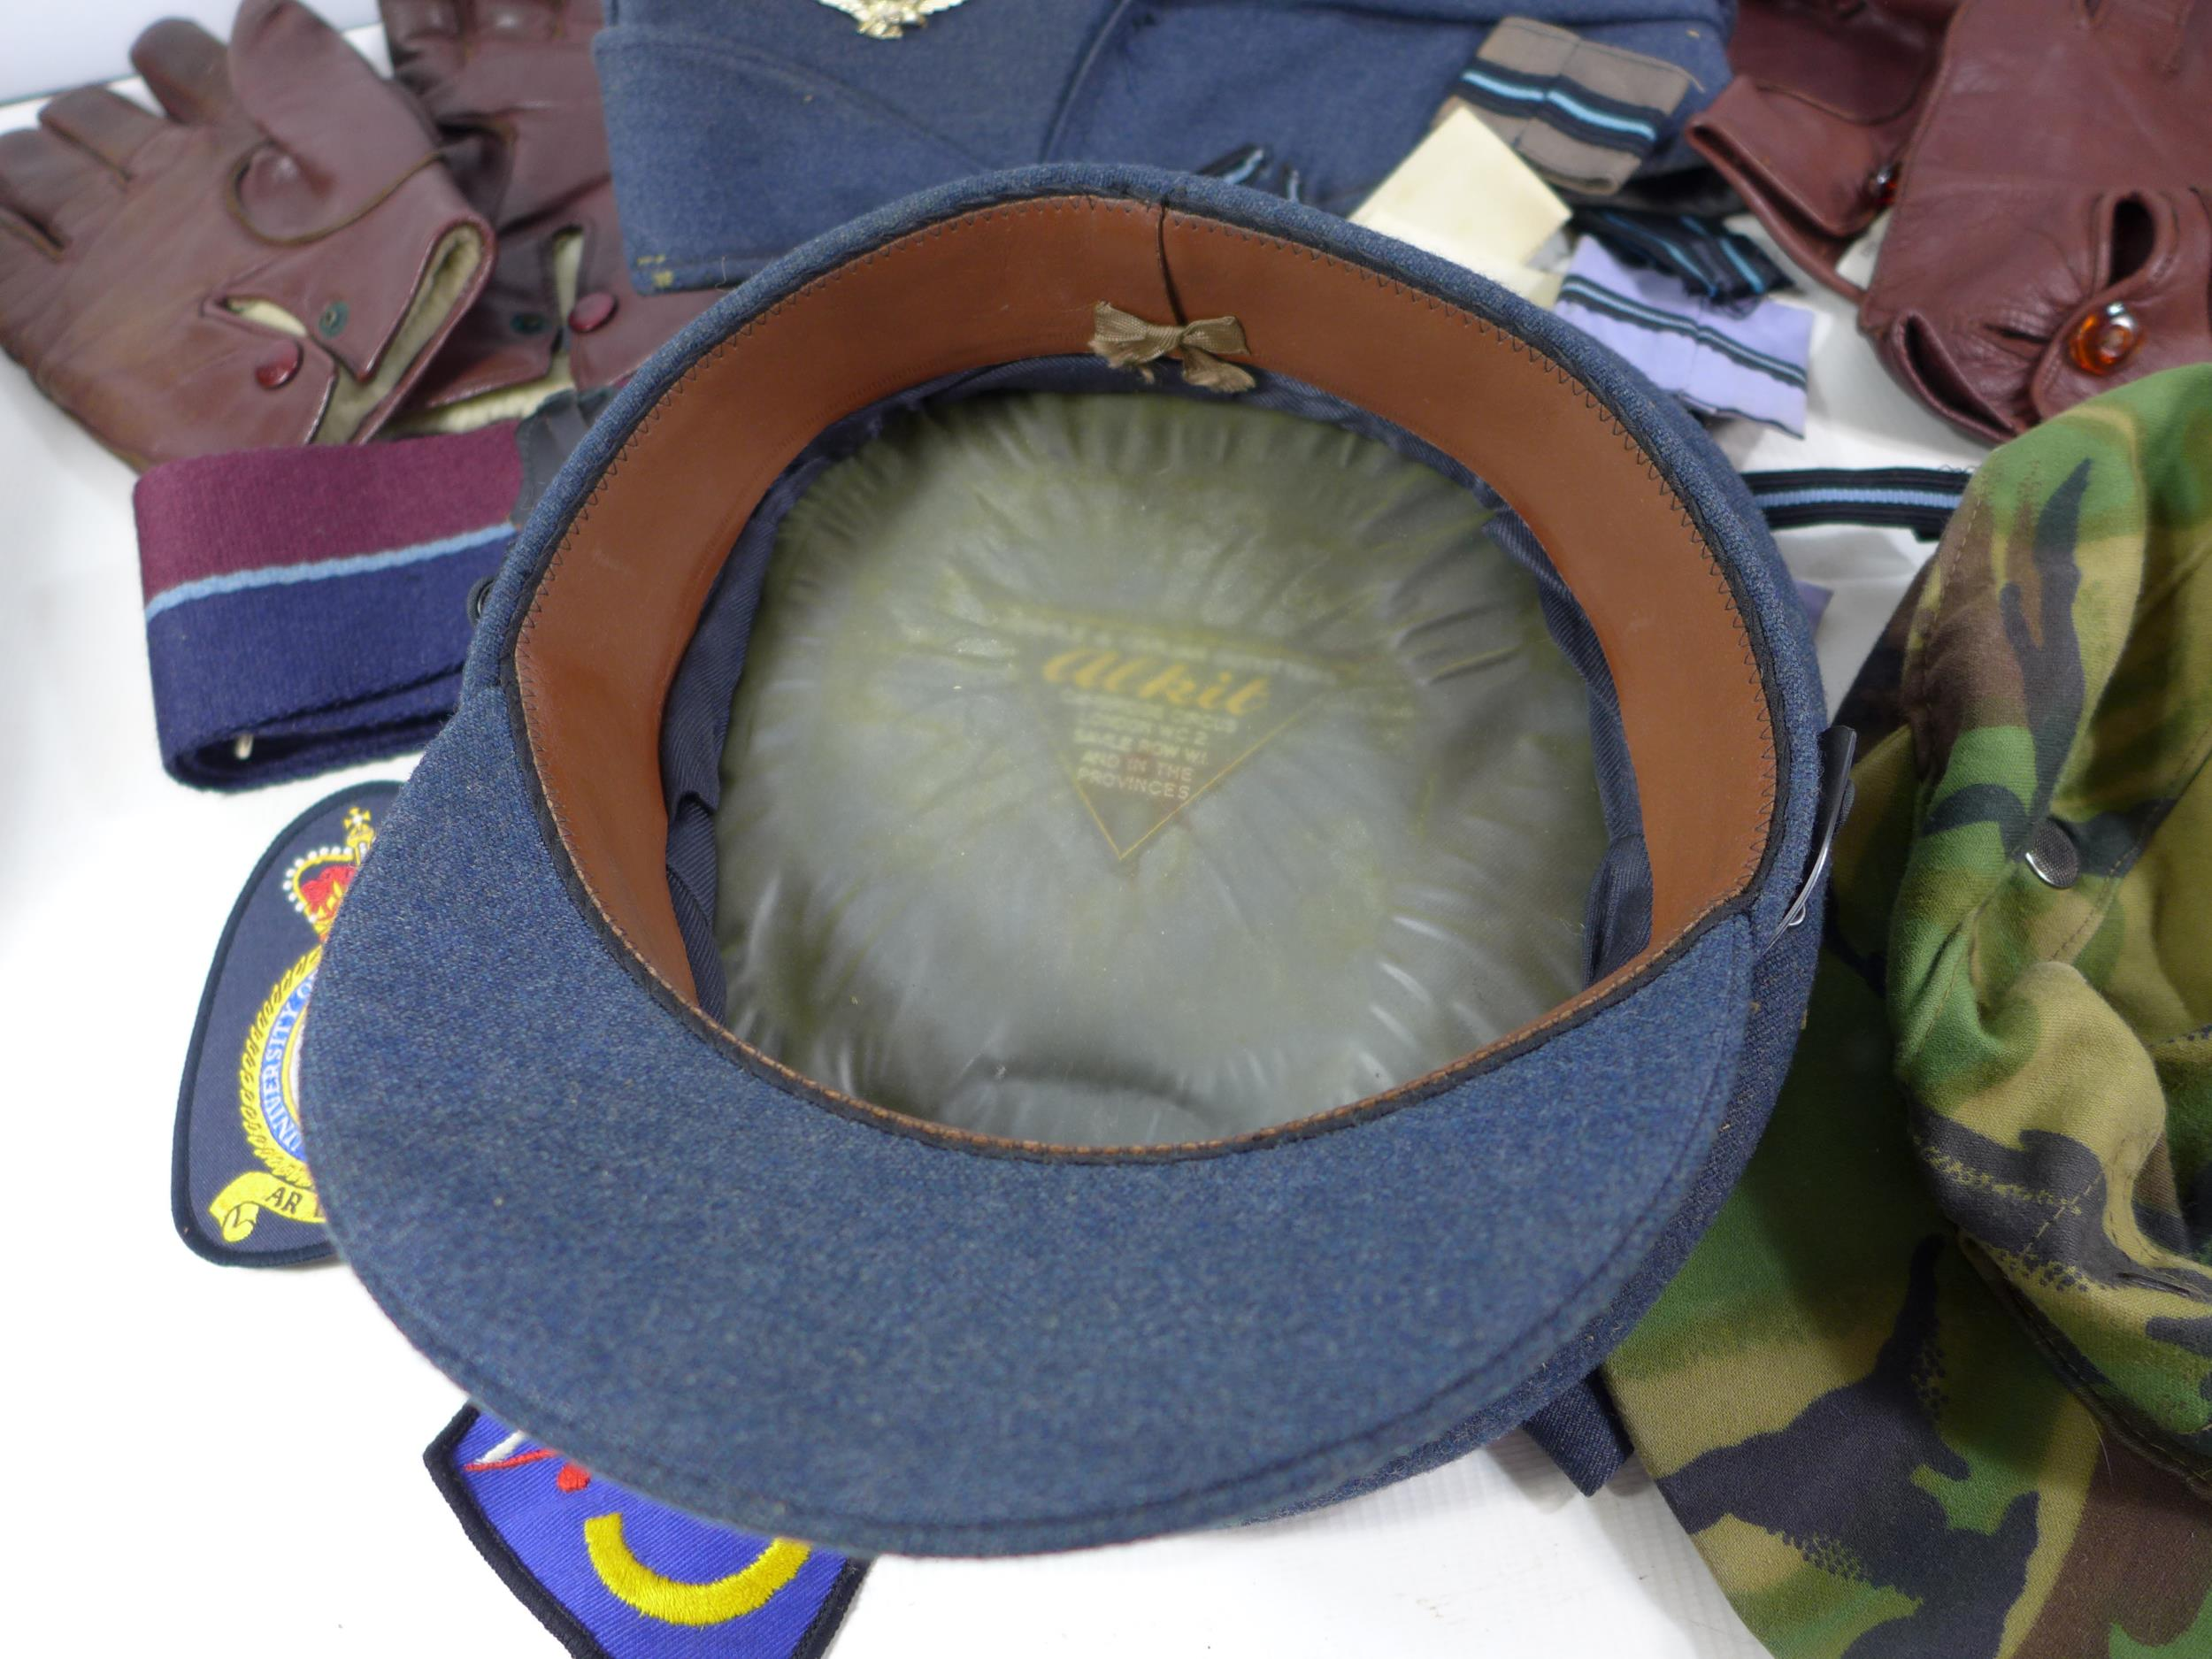 A COLLECTION OF RAF MEMORABILIA COMPRISING CAP, GLOVES, BELTS, FLASHES ETC - Image 4 of 6